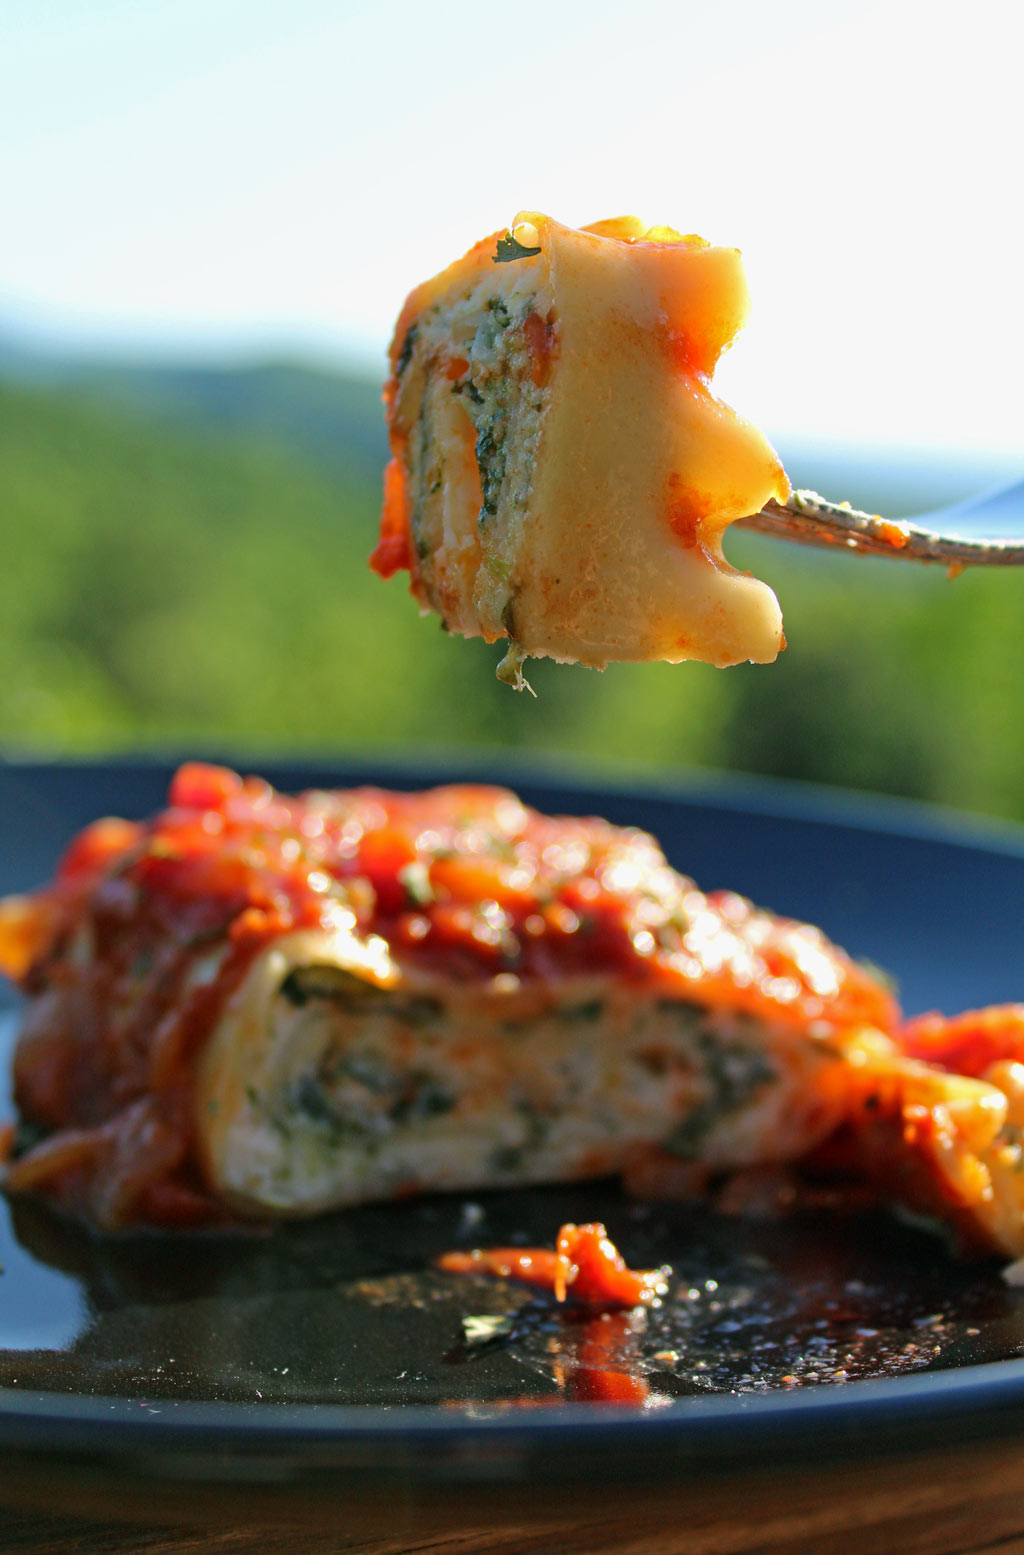 Spinach lasagna rolls: creamy ricotta and mozzarella cheeses mixed and fresh sauteed spinach, rolled inside lasagna noodles topped with marinara sauce. Yum!